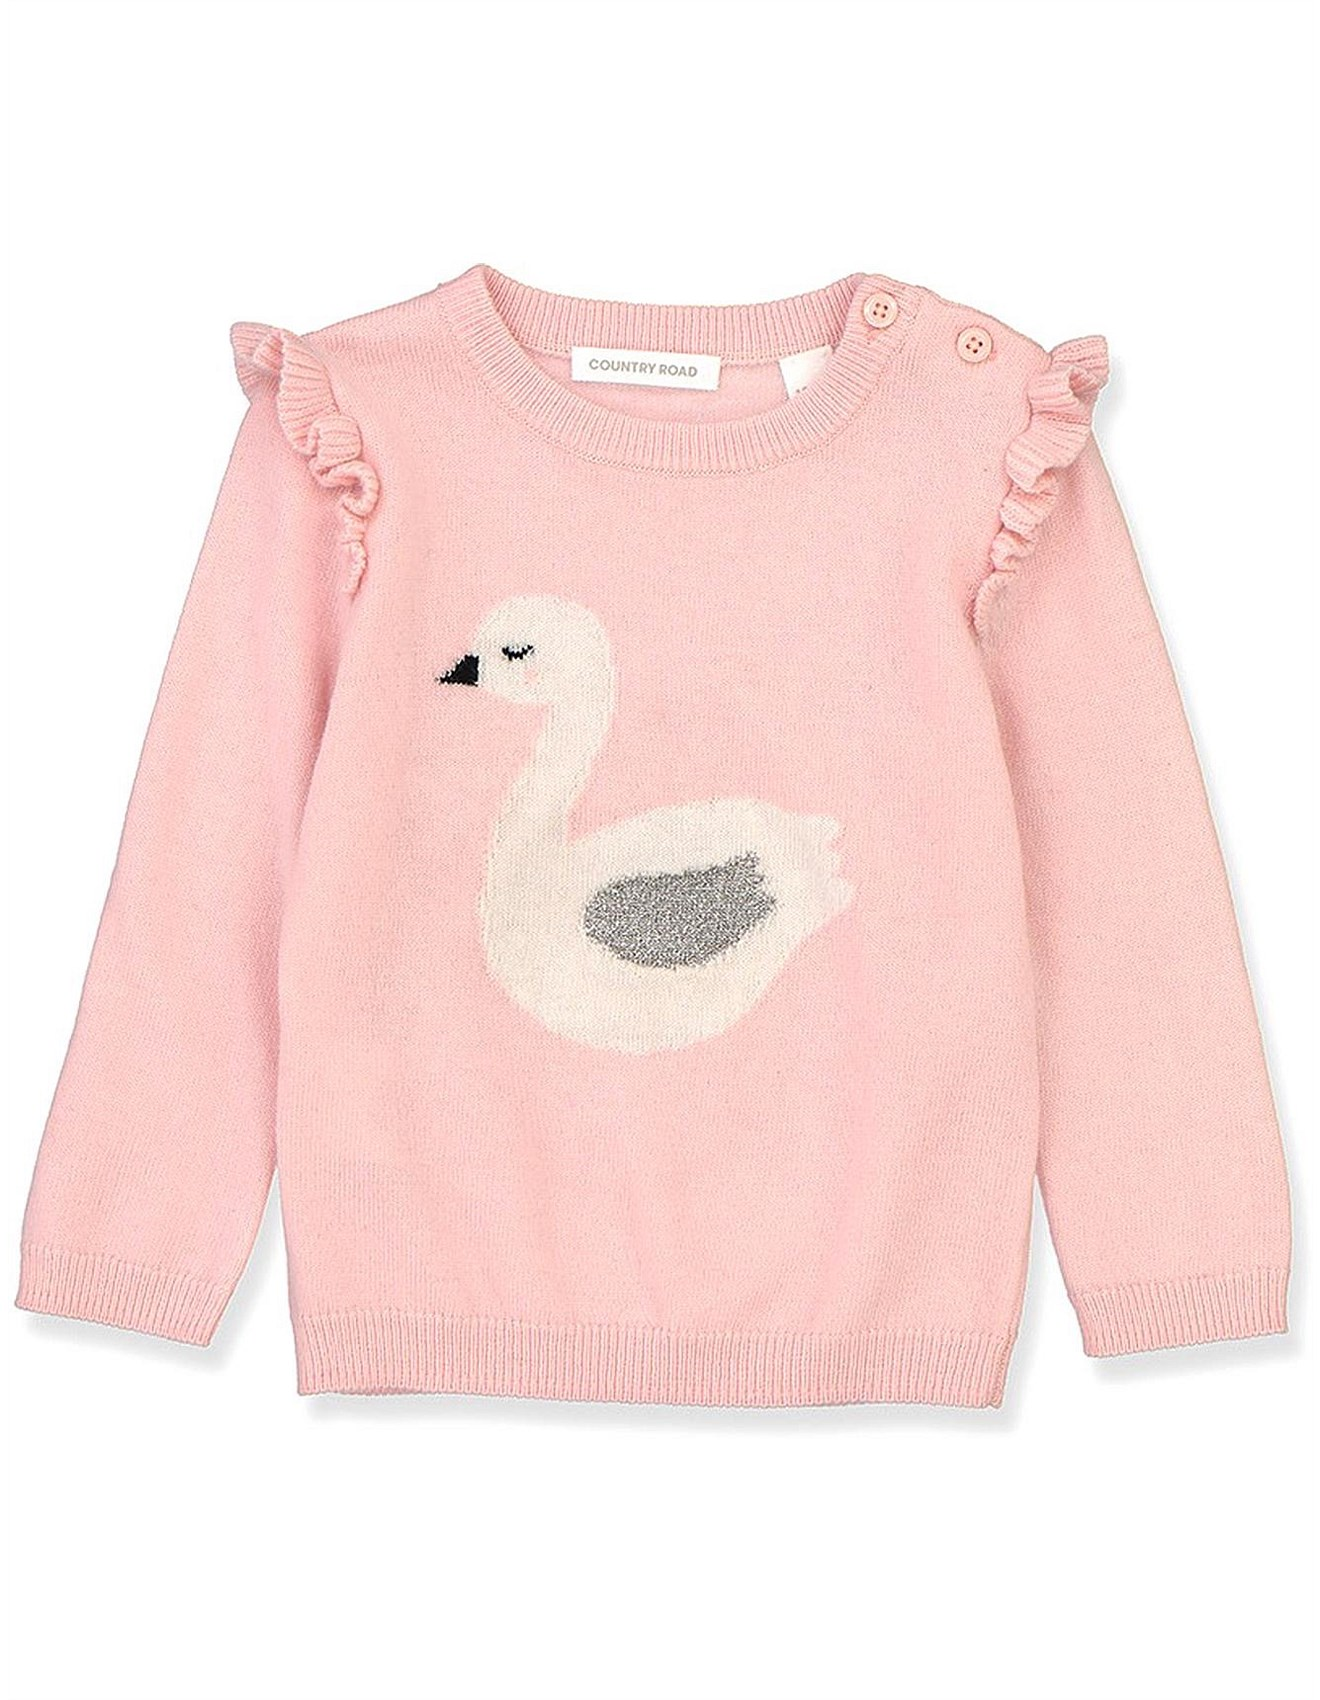 f1a507ea7 Baby Clothing | Buy Baby Clothes & Accessories | David Jones - Frill Swan  Pullover